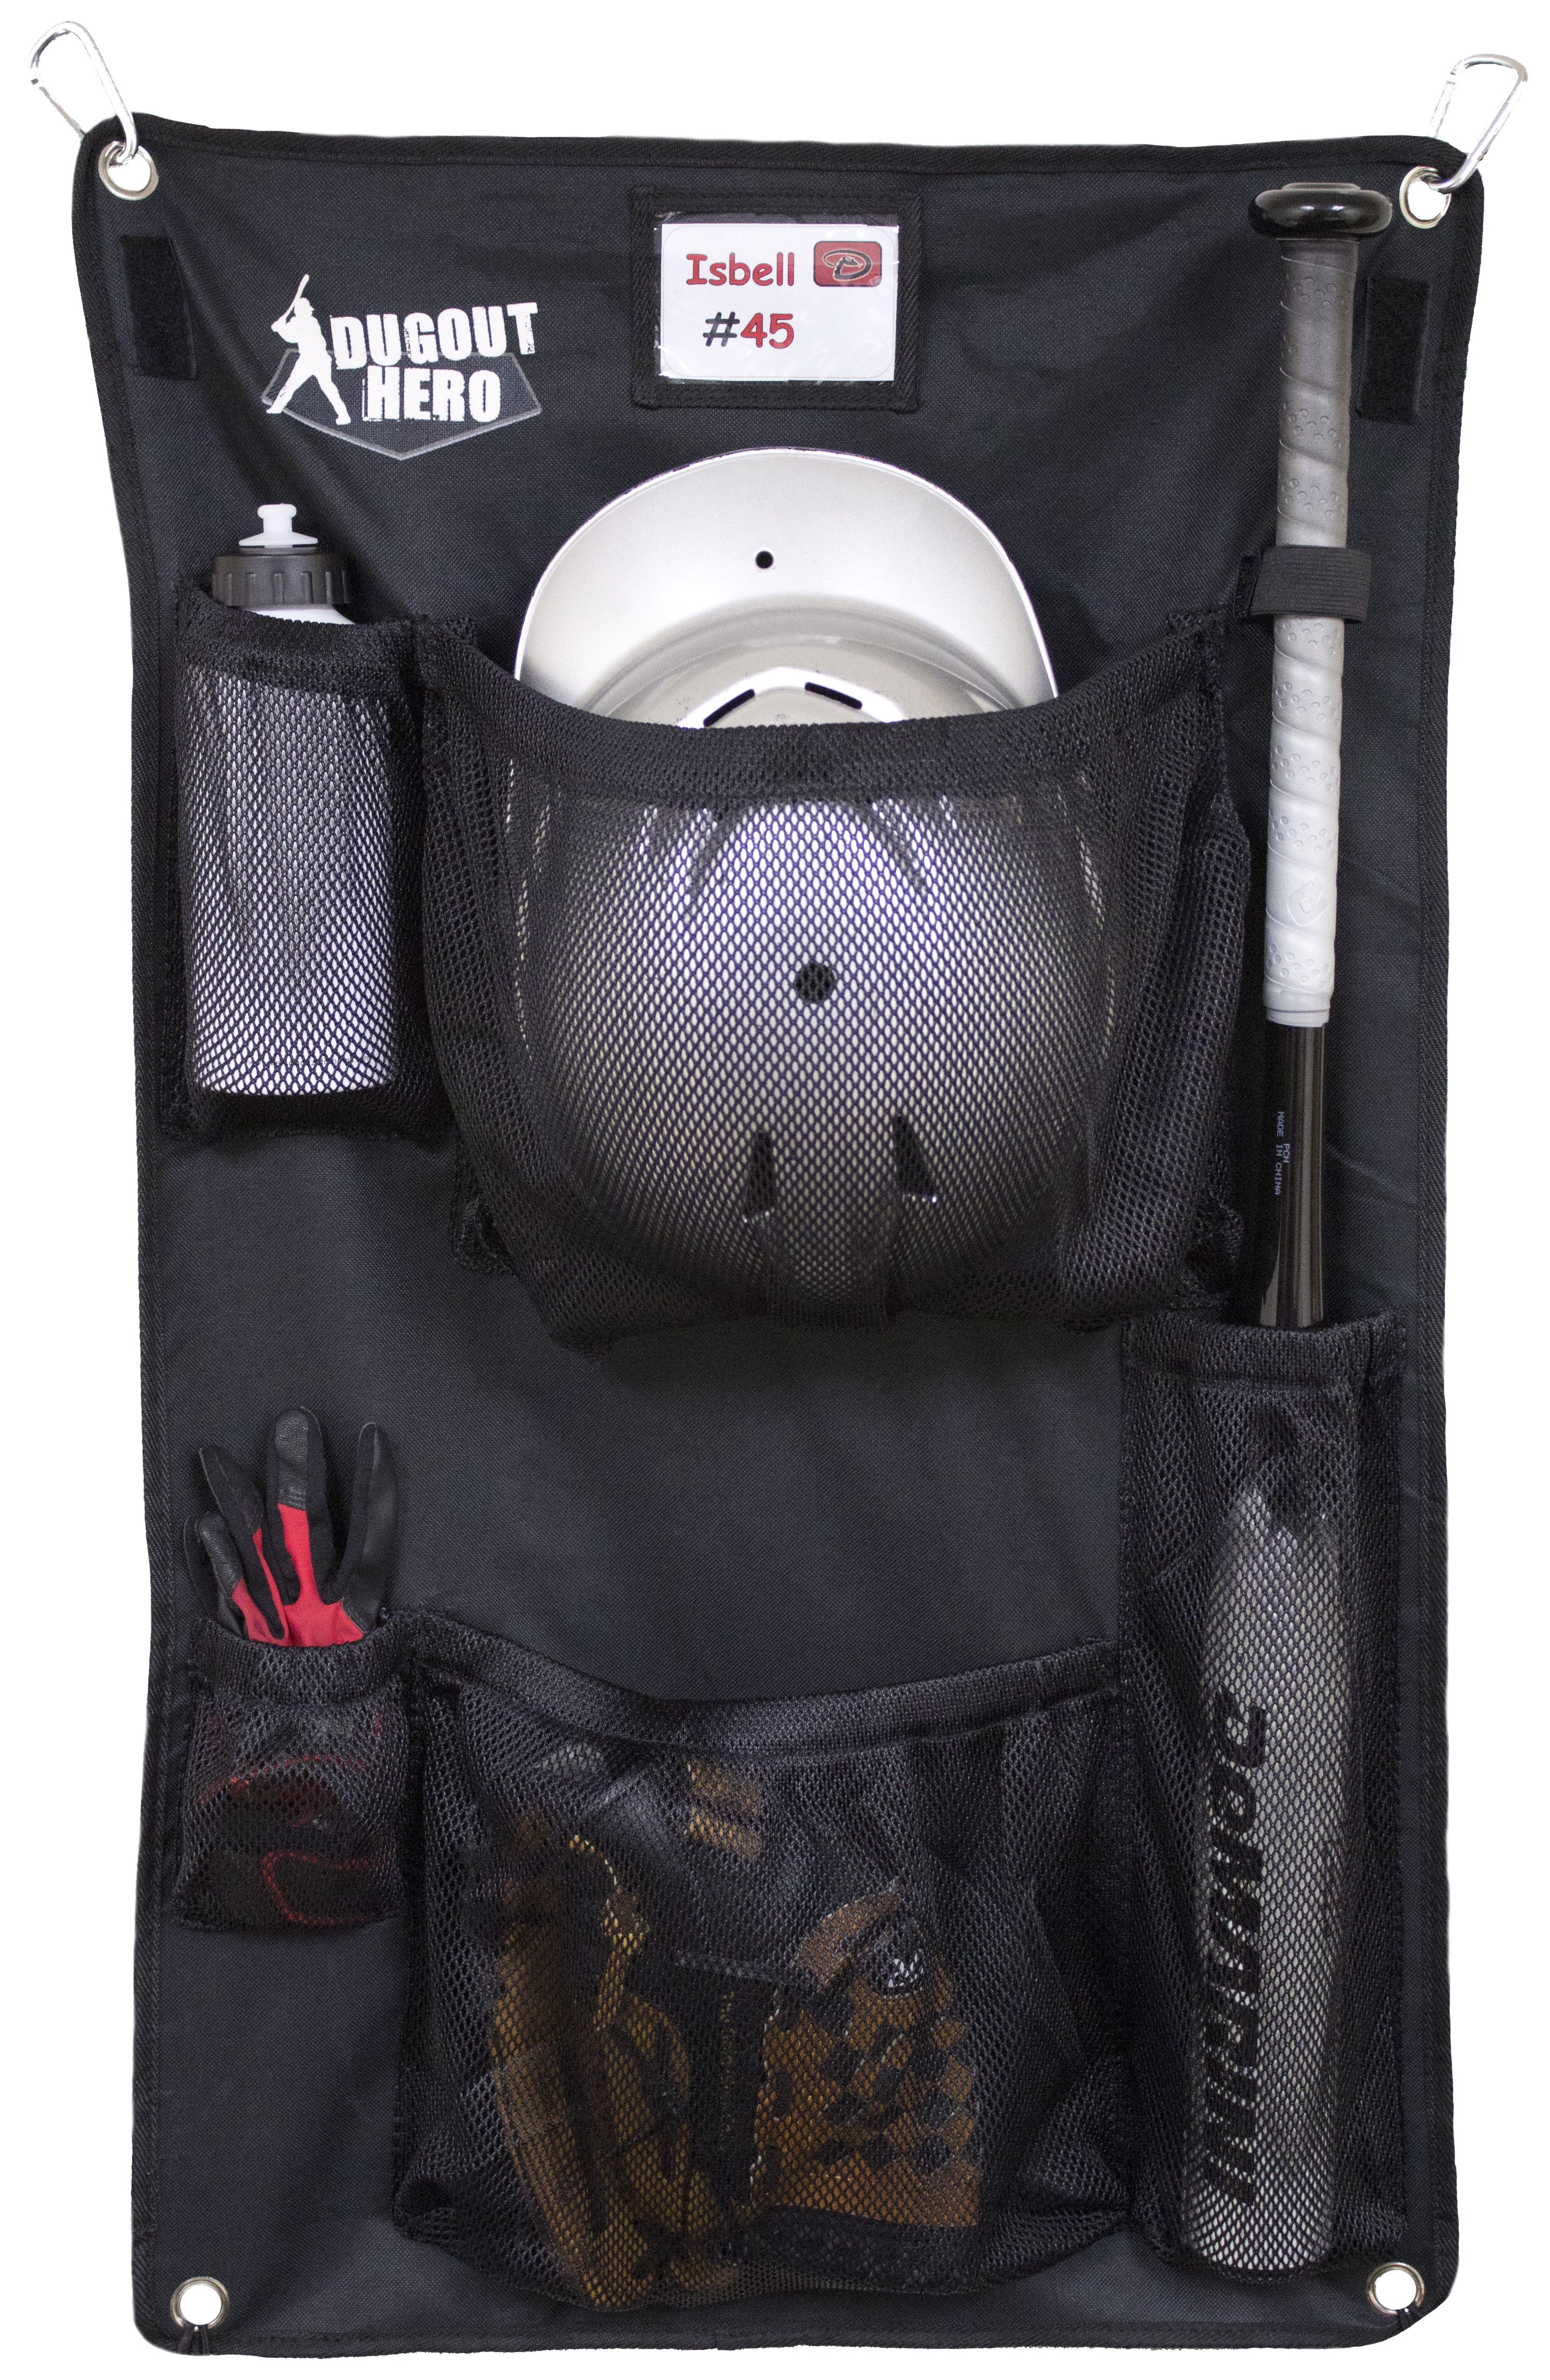 The Dugout Hero Is A Personal Organizer For Baseball Softball And T Ball Designed As Supplement To Bat Bag It Picks Up Where